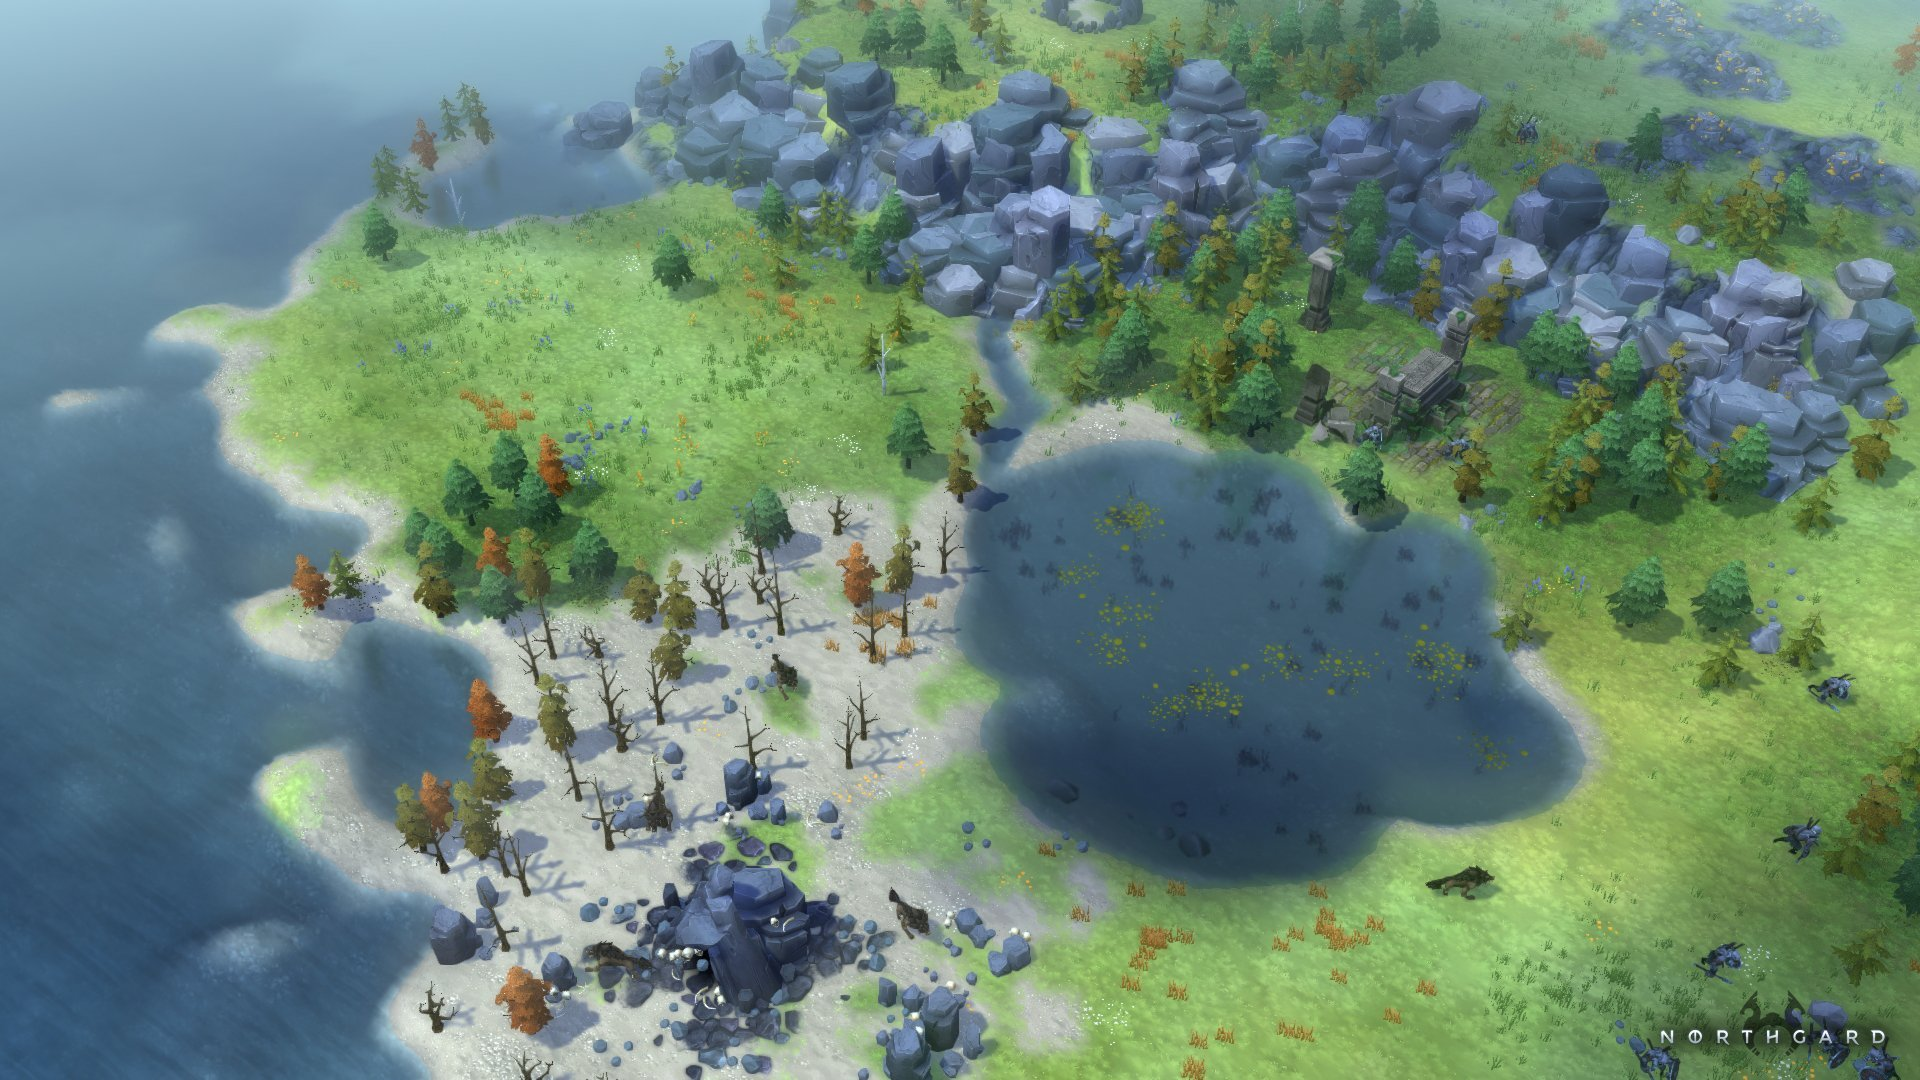 Northgard trans to winter